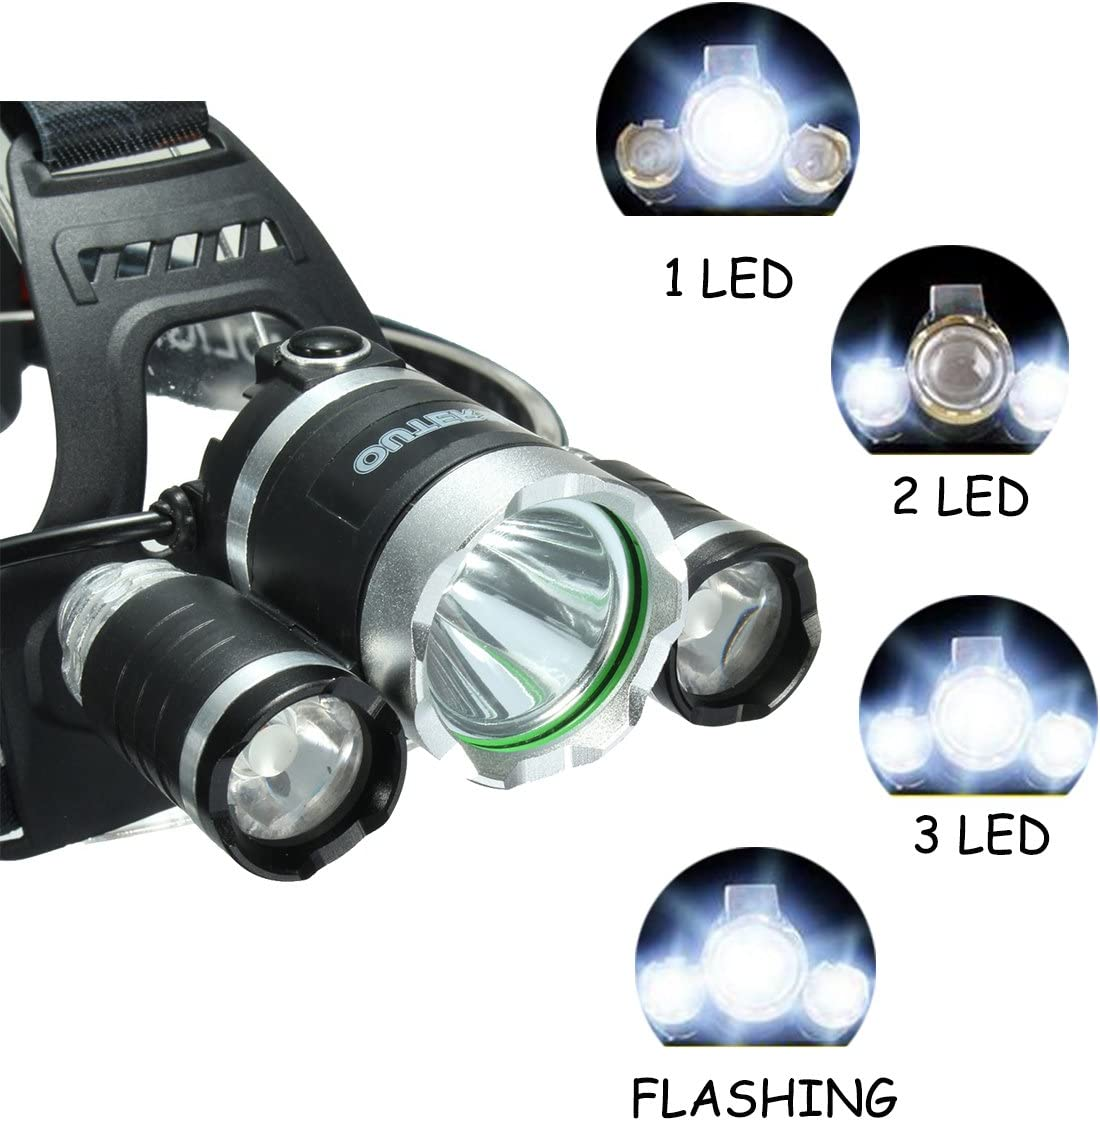 This is an image of the Outerdo headlamp with three LEDs.